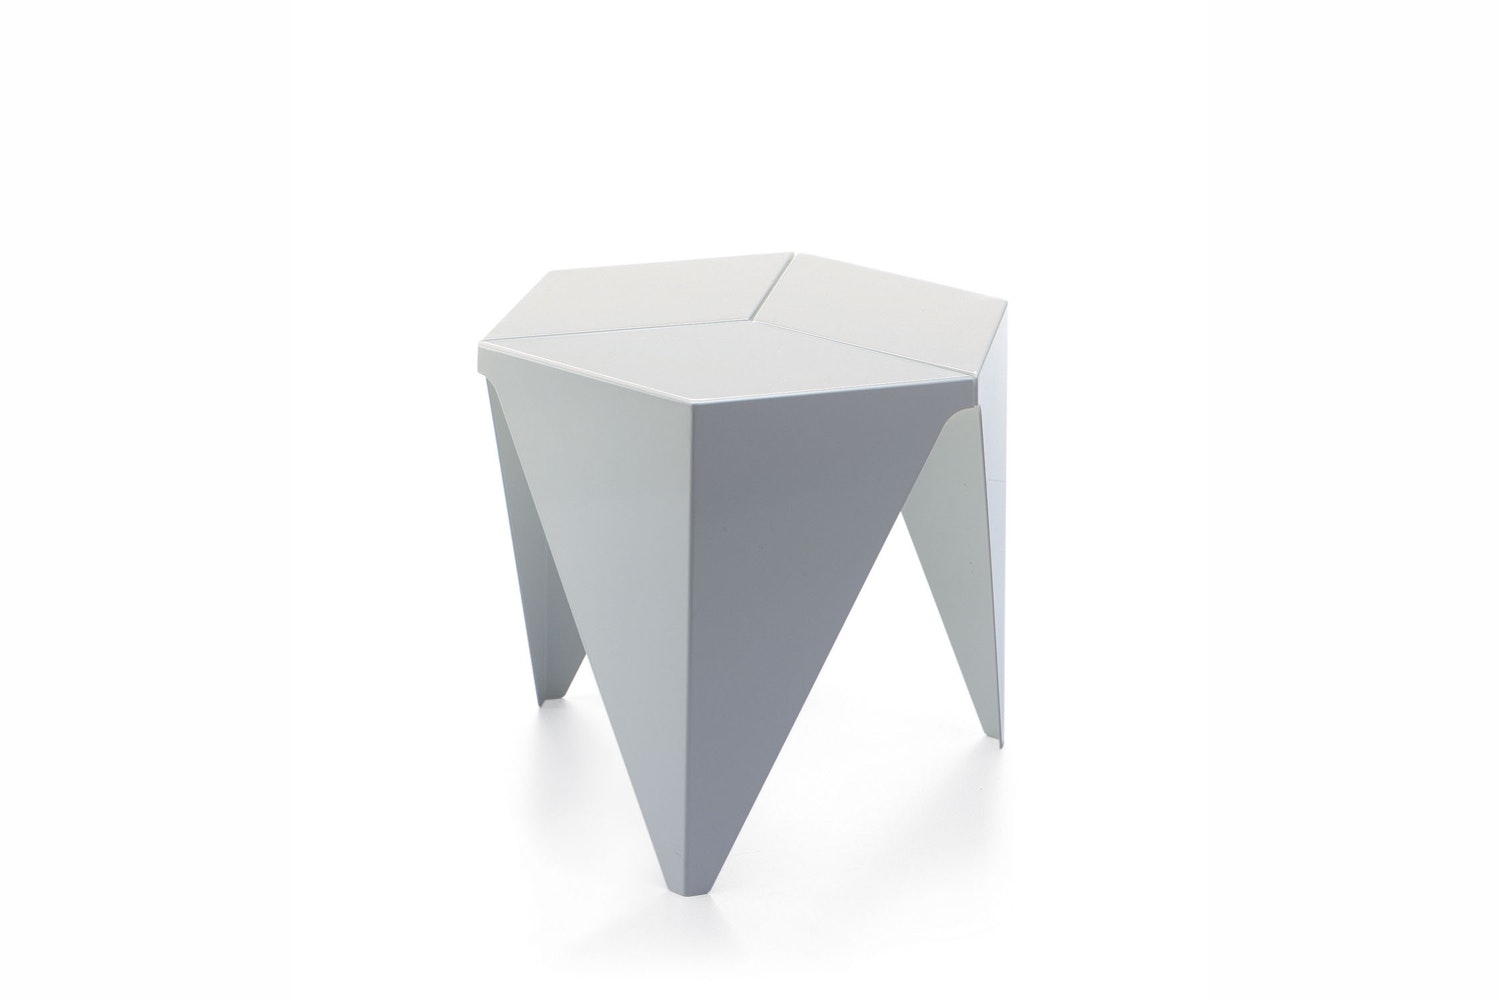 Prismatic Table by Isamu Noguchi for Vitra